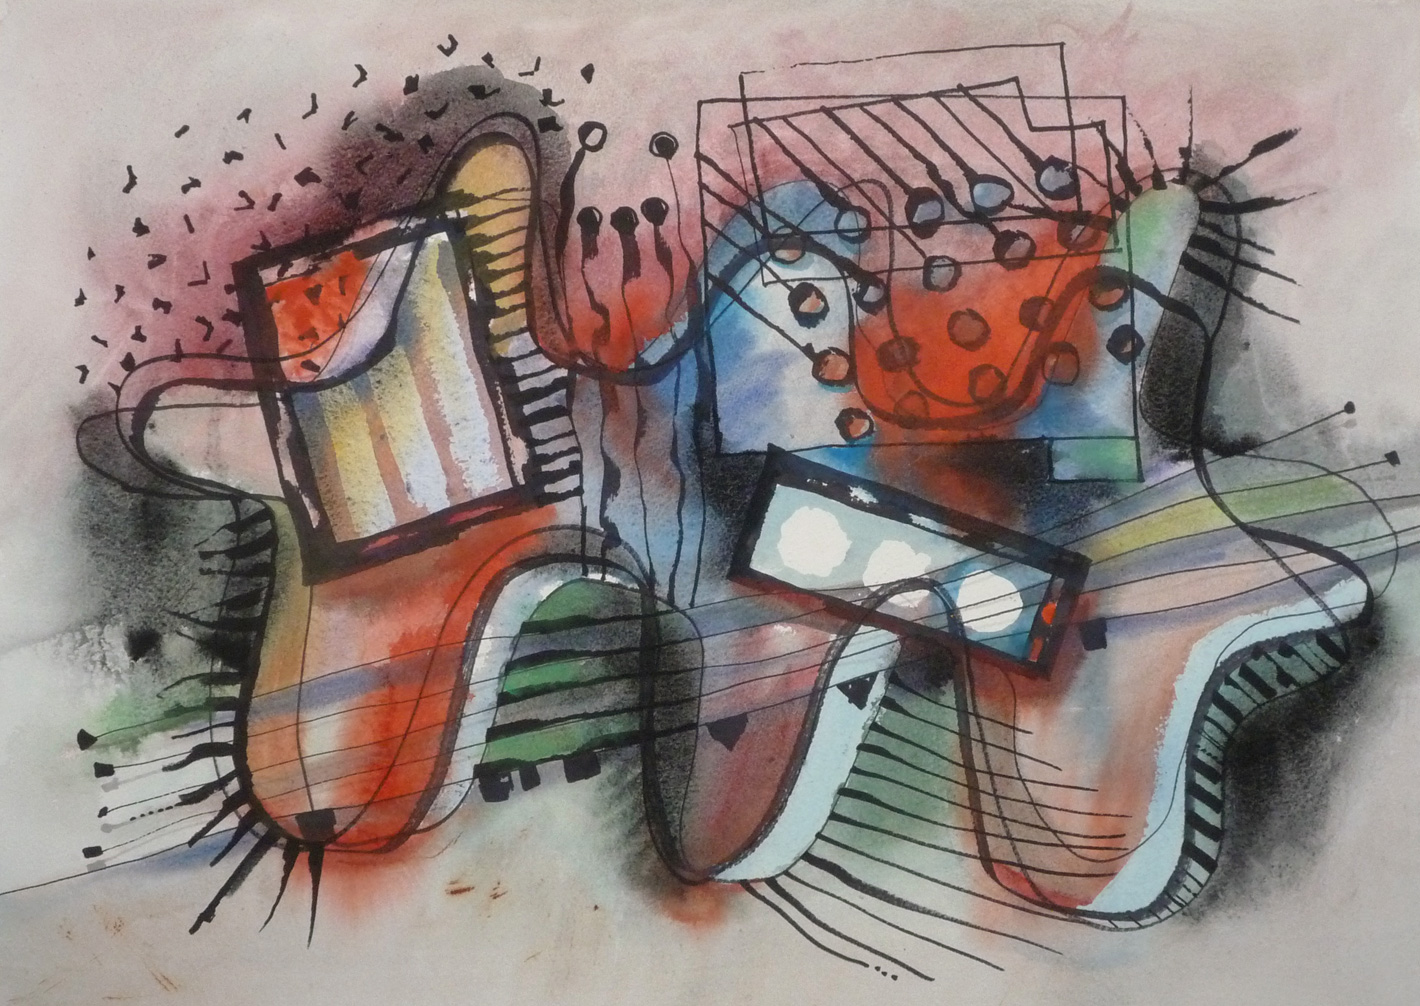 Rhythm-an-green-an-red, watercolour, gouache, felt-pen and pencil on paper, A2 size